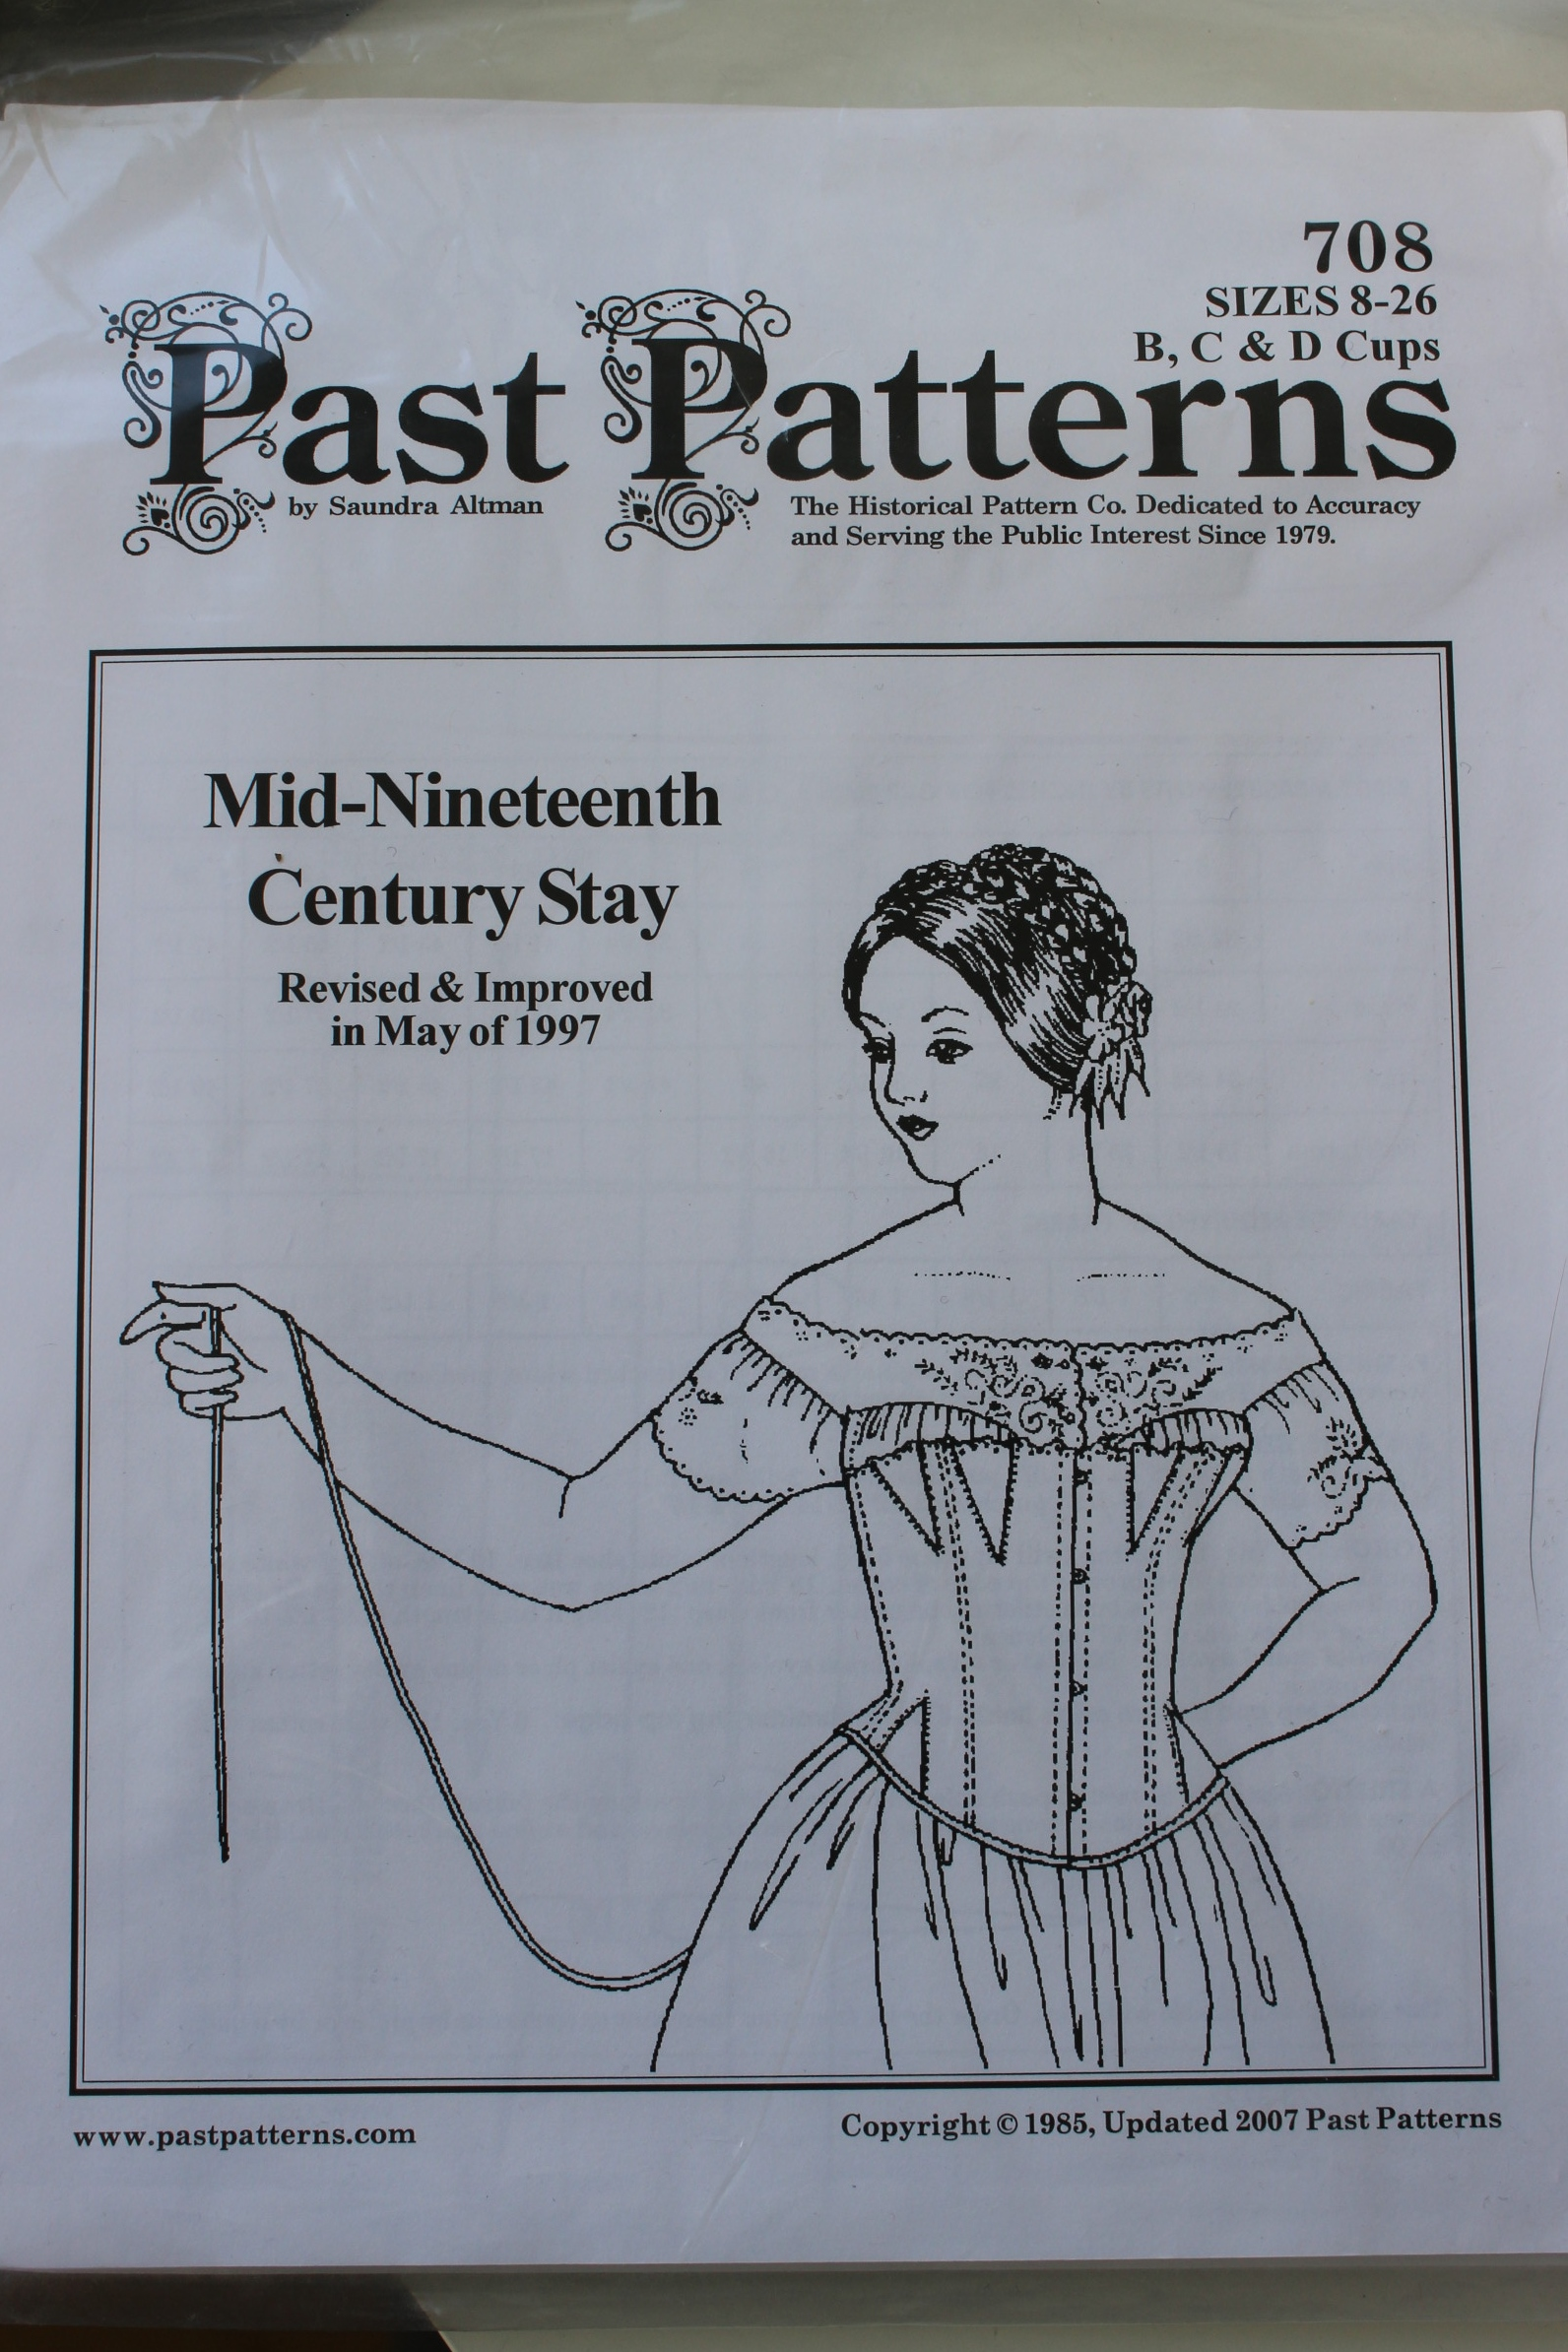 Past Patterns Early to Mid 19th C Stays Patterns